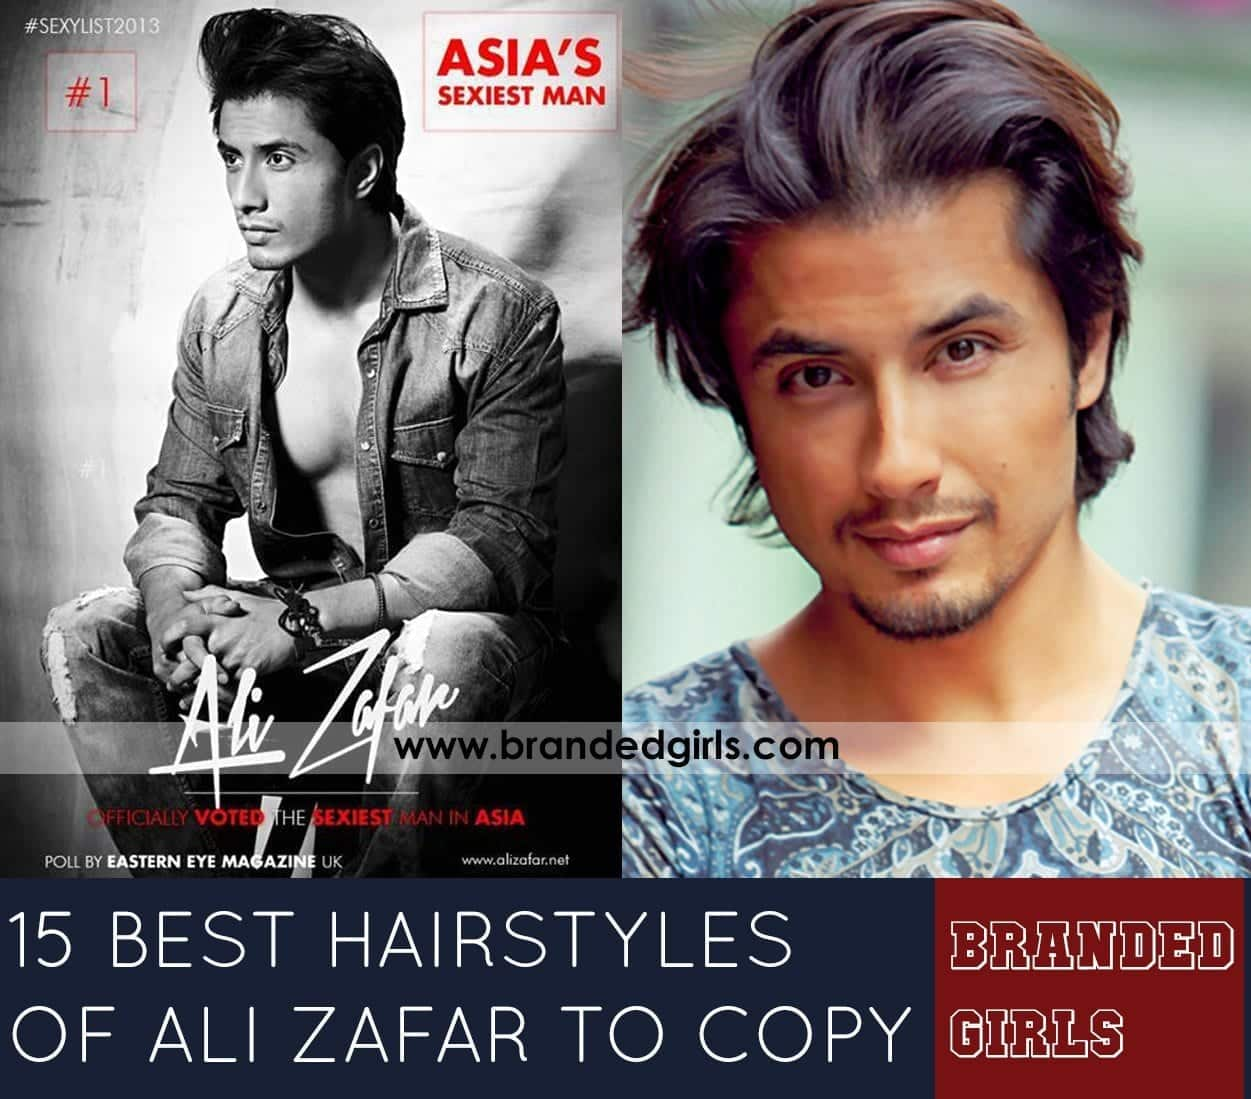 polyvore-sample-8 Ali Zafar Hairstyles - 15 Best Hairstyles of Ali Zafar to Copy